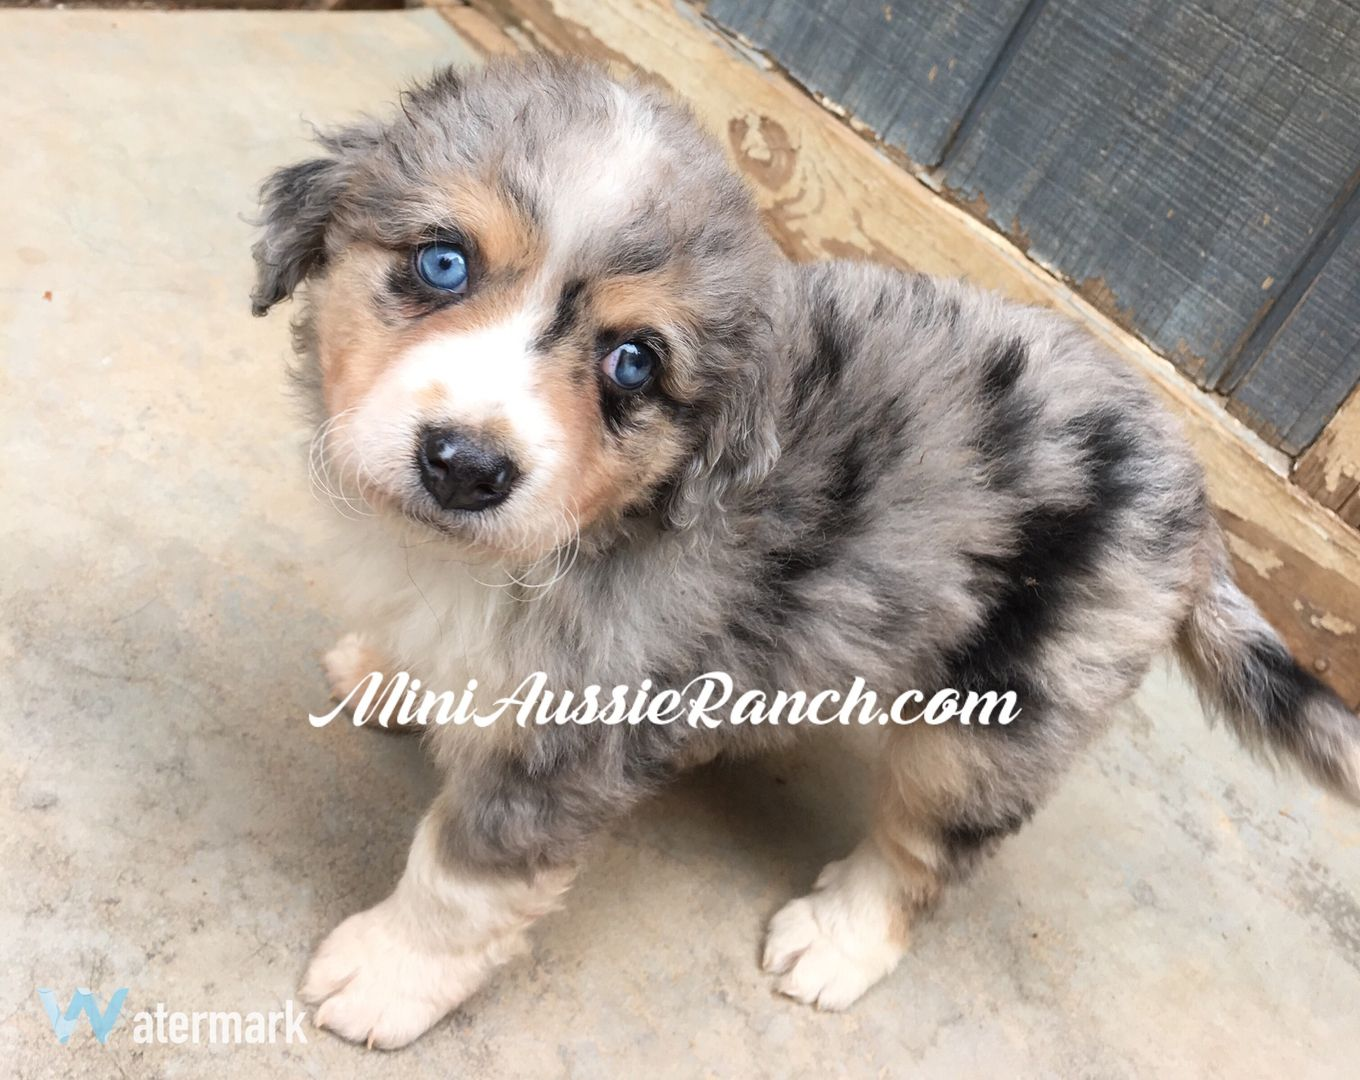 Miniature Australian Shepherd puppies for sale in